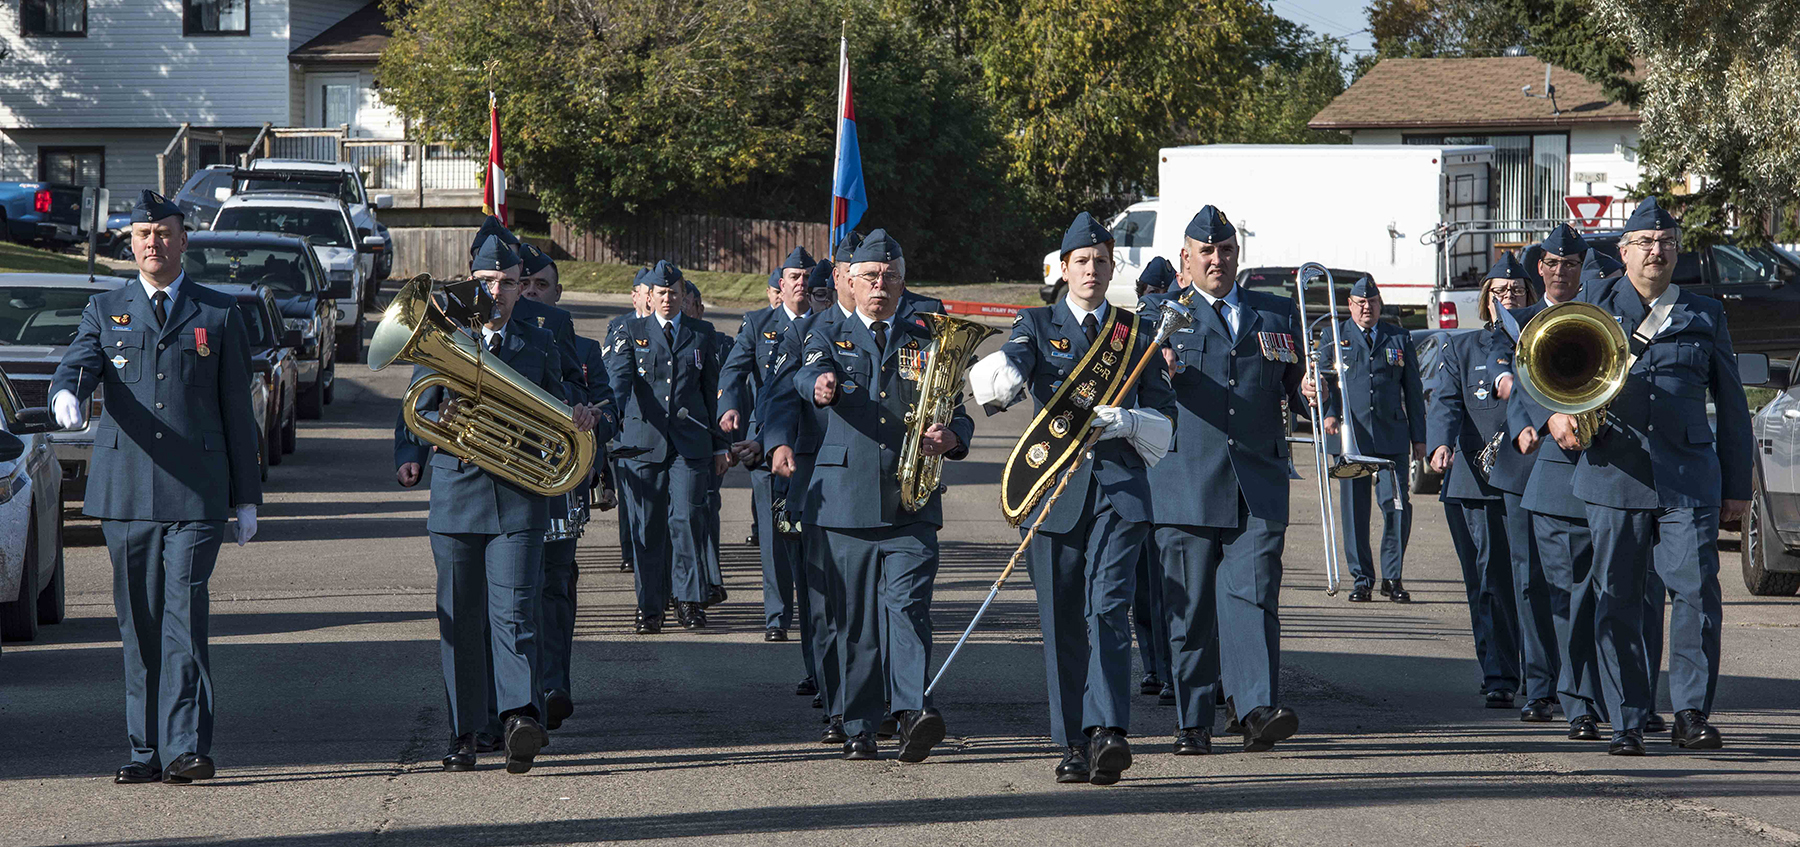 On September 17, 2017, the 4 Wing Band leads 4 Wing Cold Lake personnel to Veterans Memorial Park in Cold Lake, Alberta, to mark the 77th anniversary of the Battle of Britain. PHOTO: Aviator Caitlin Paterson, CK09-2017-0821-001